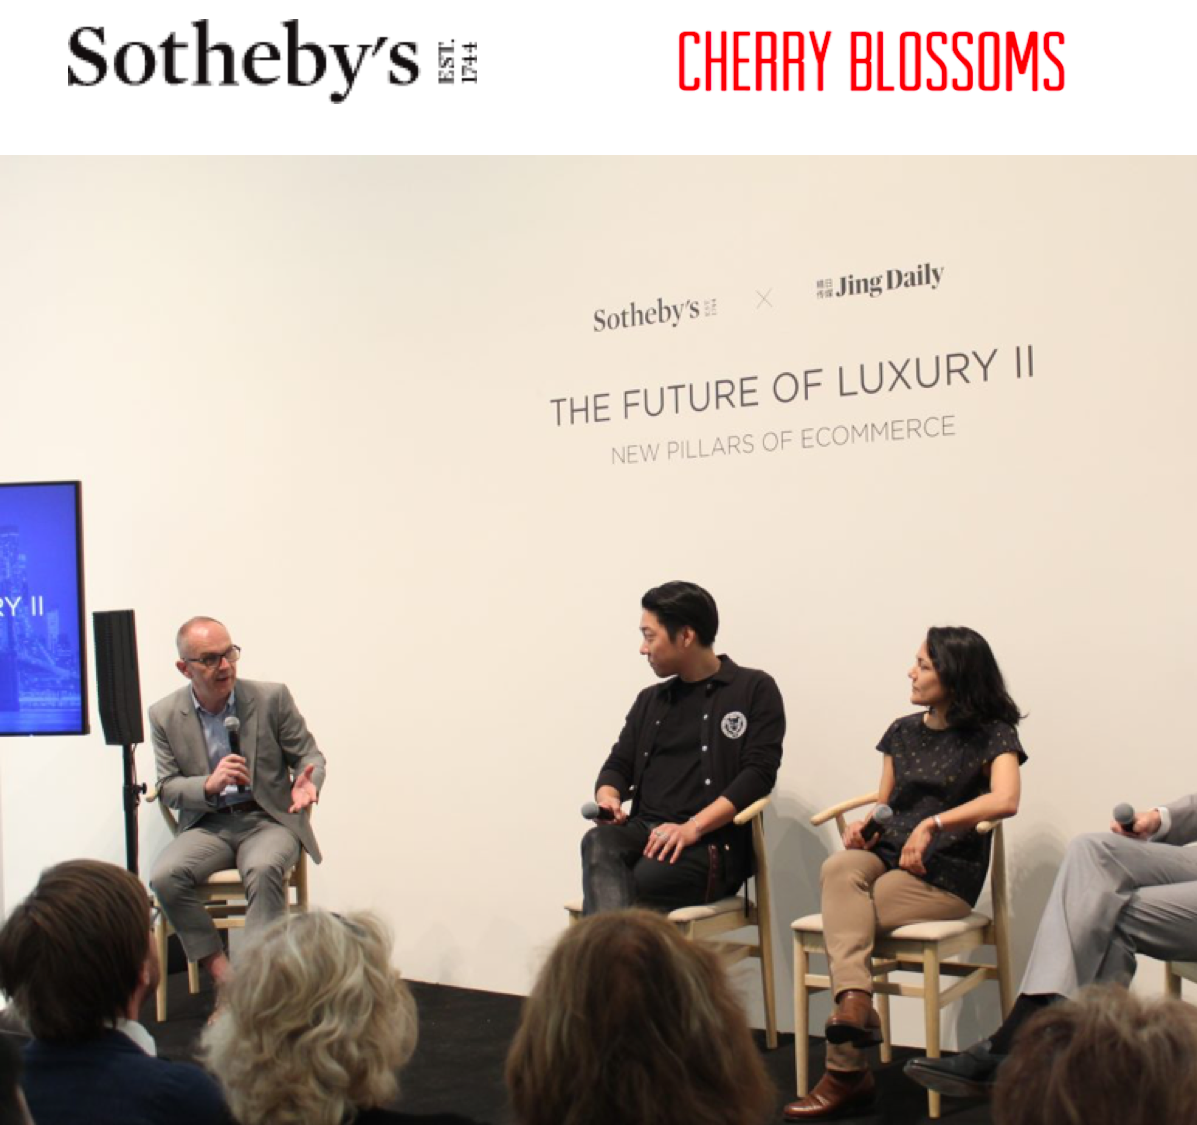 How to define luxury through narrative?